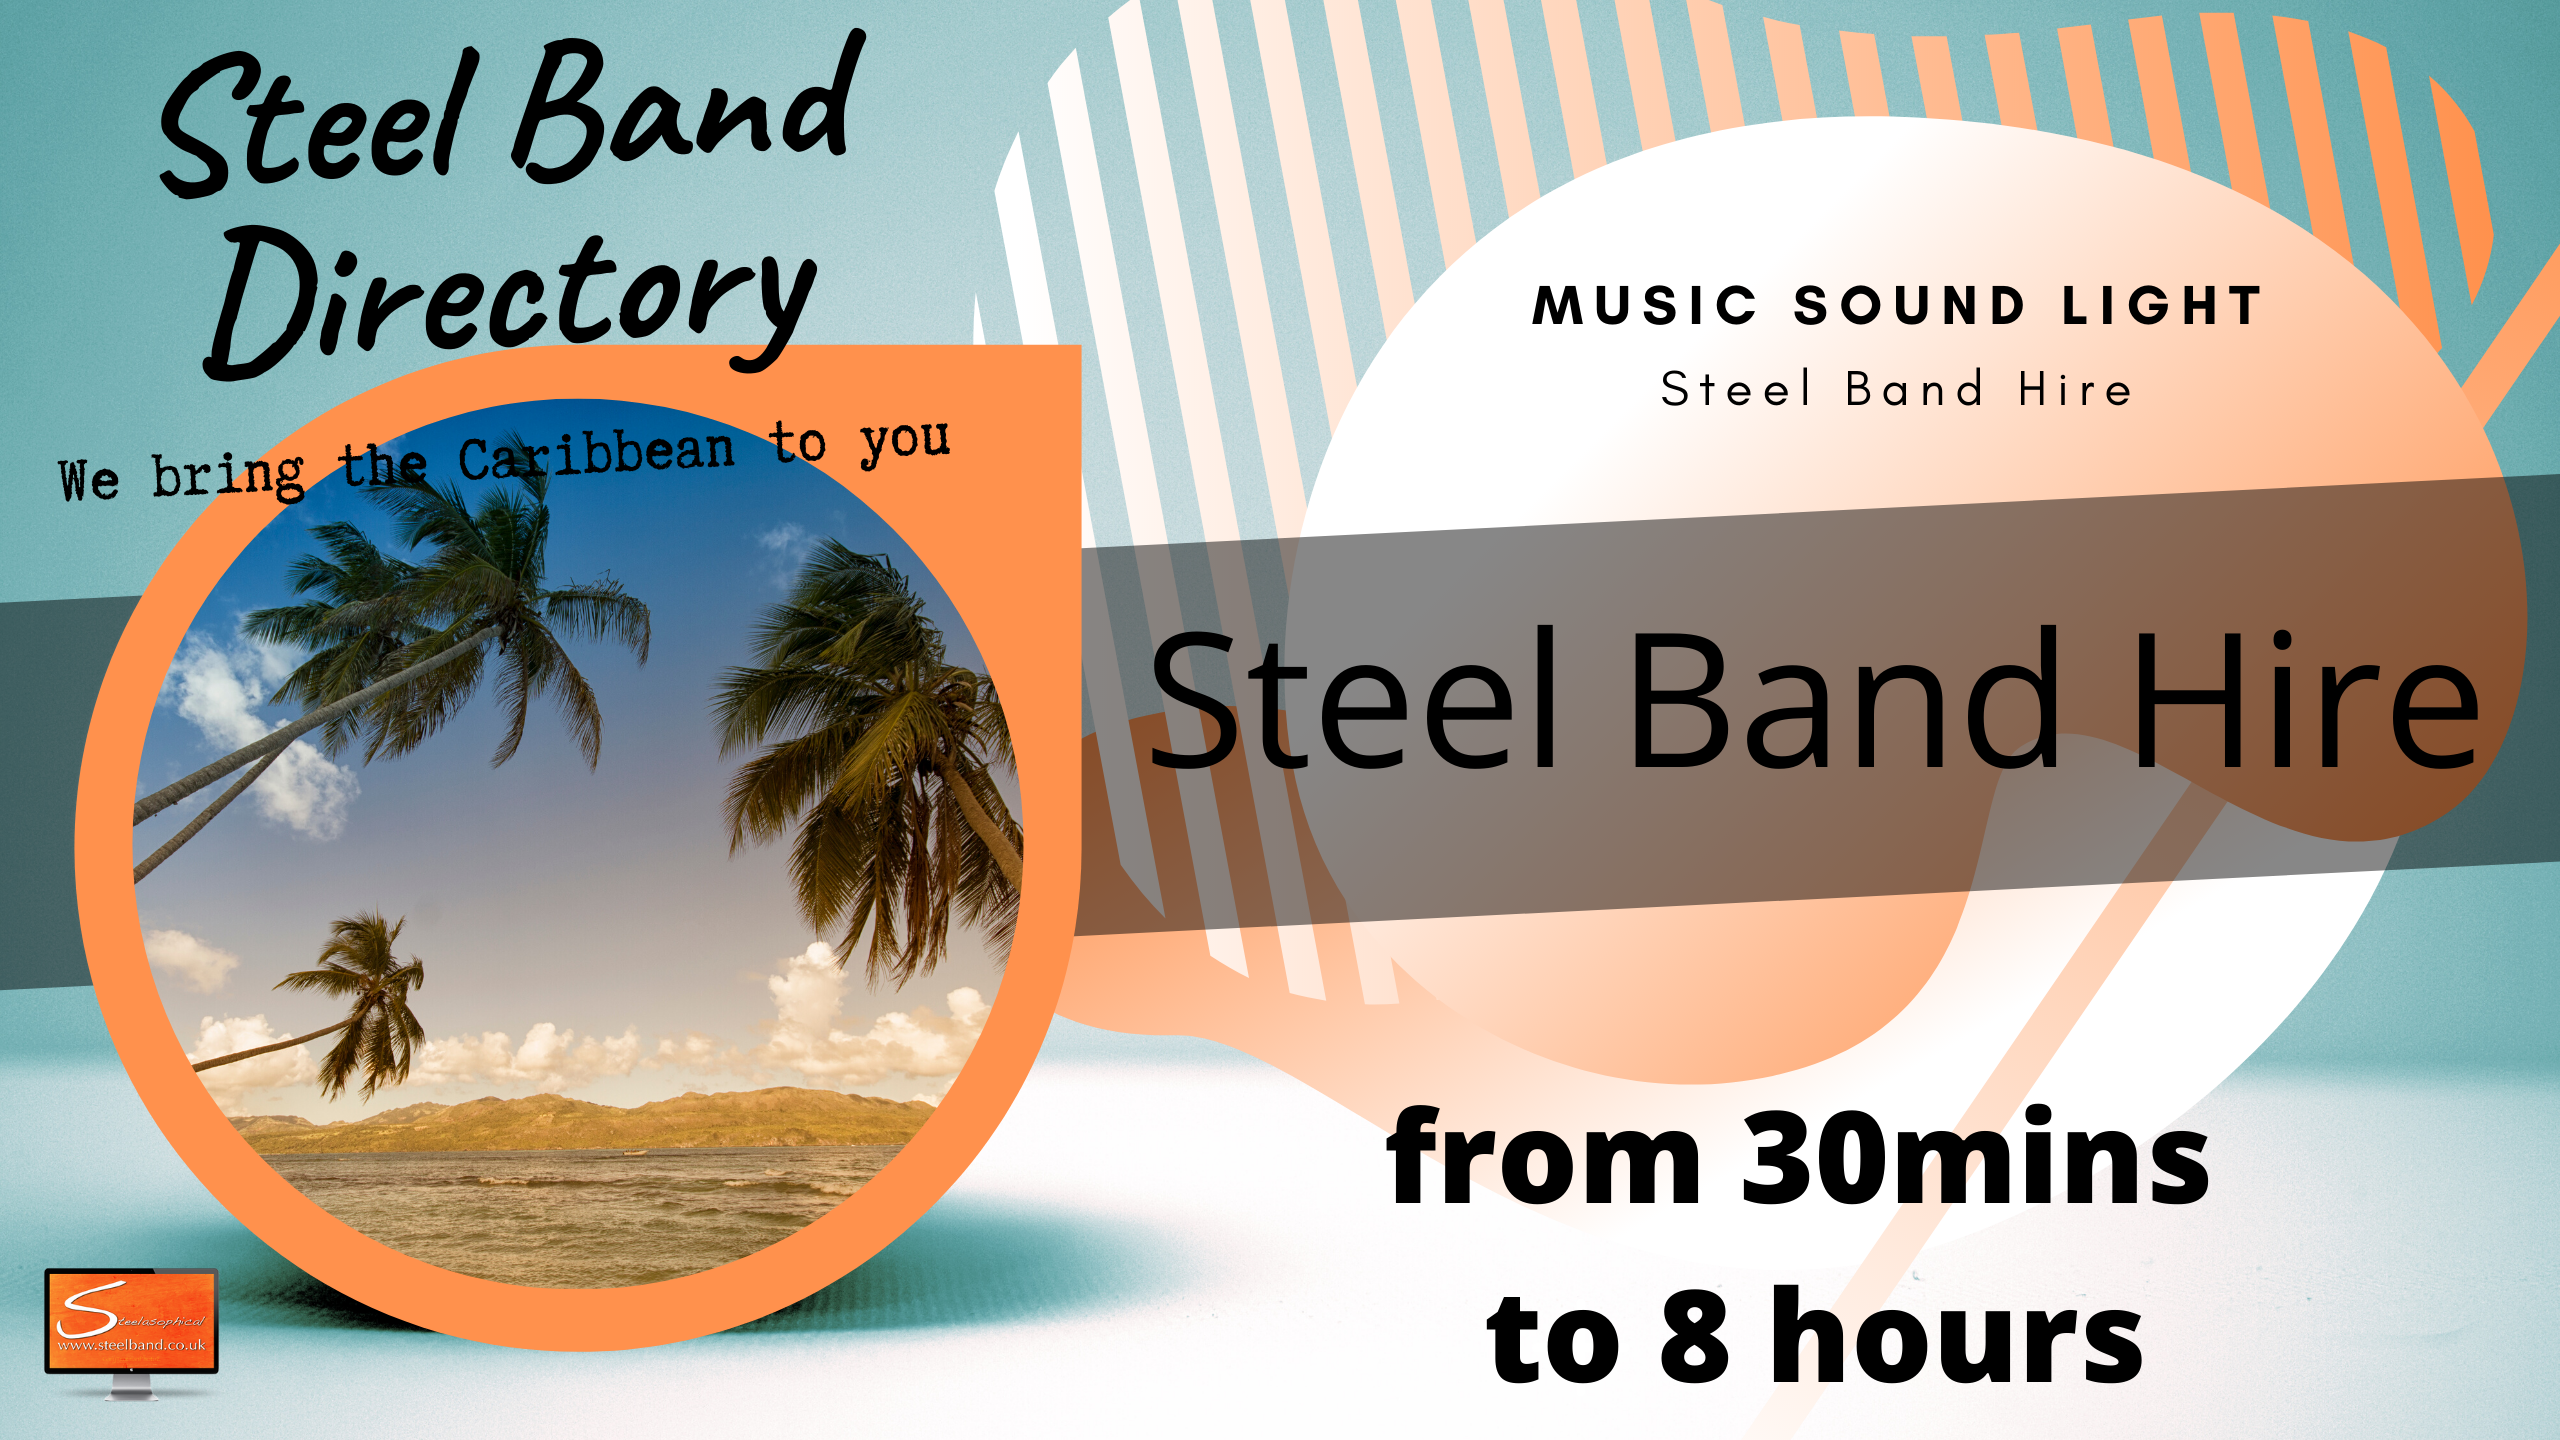 Caribbean Island steel bands for hire uk 9088